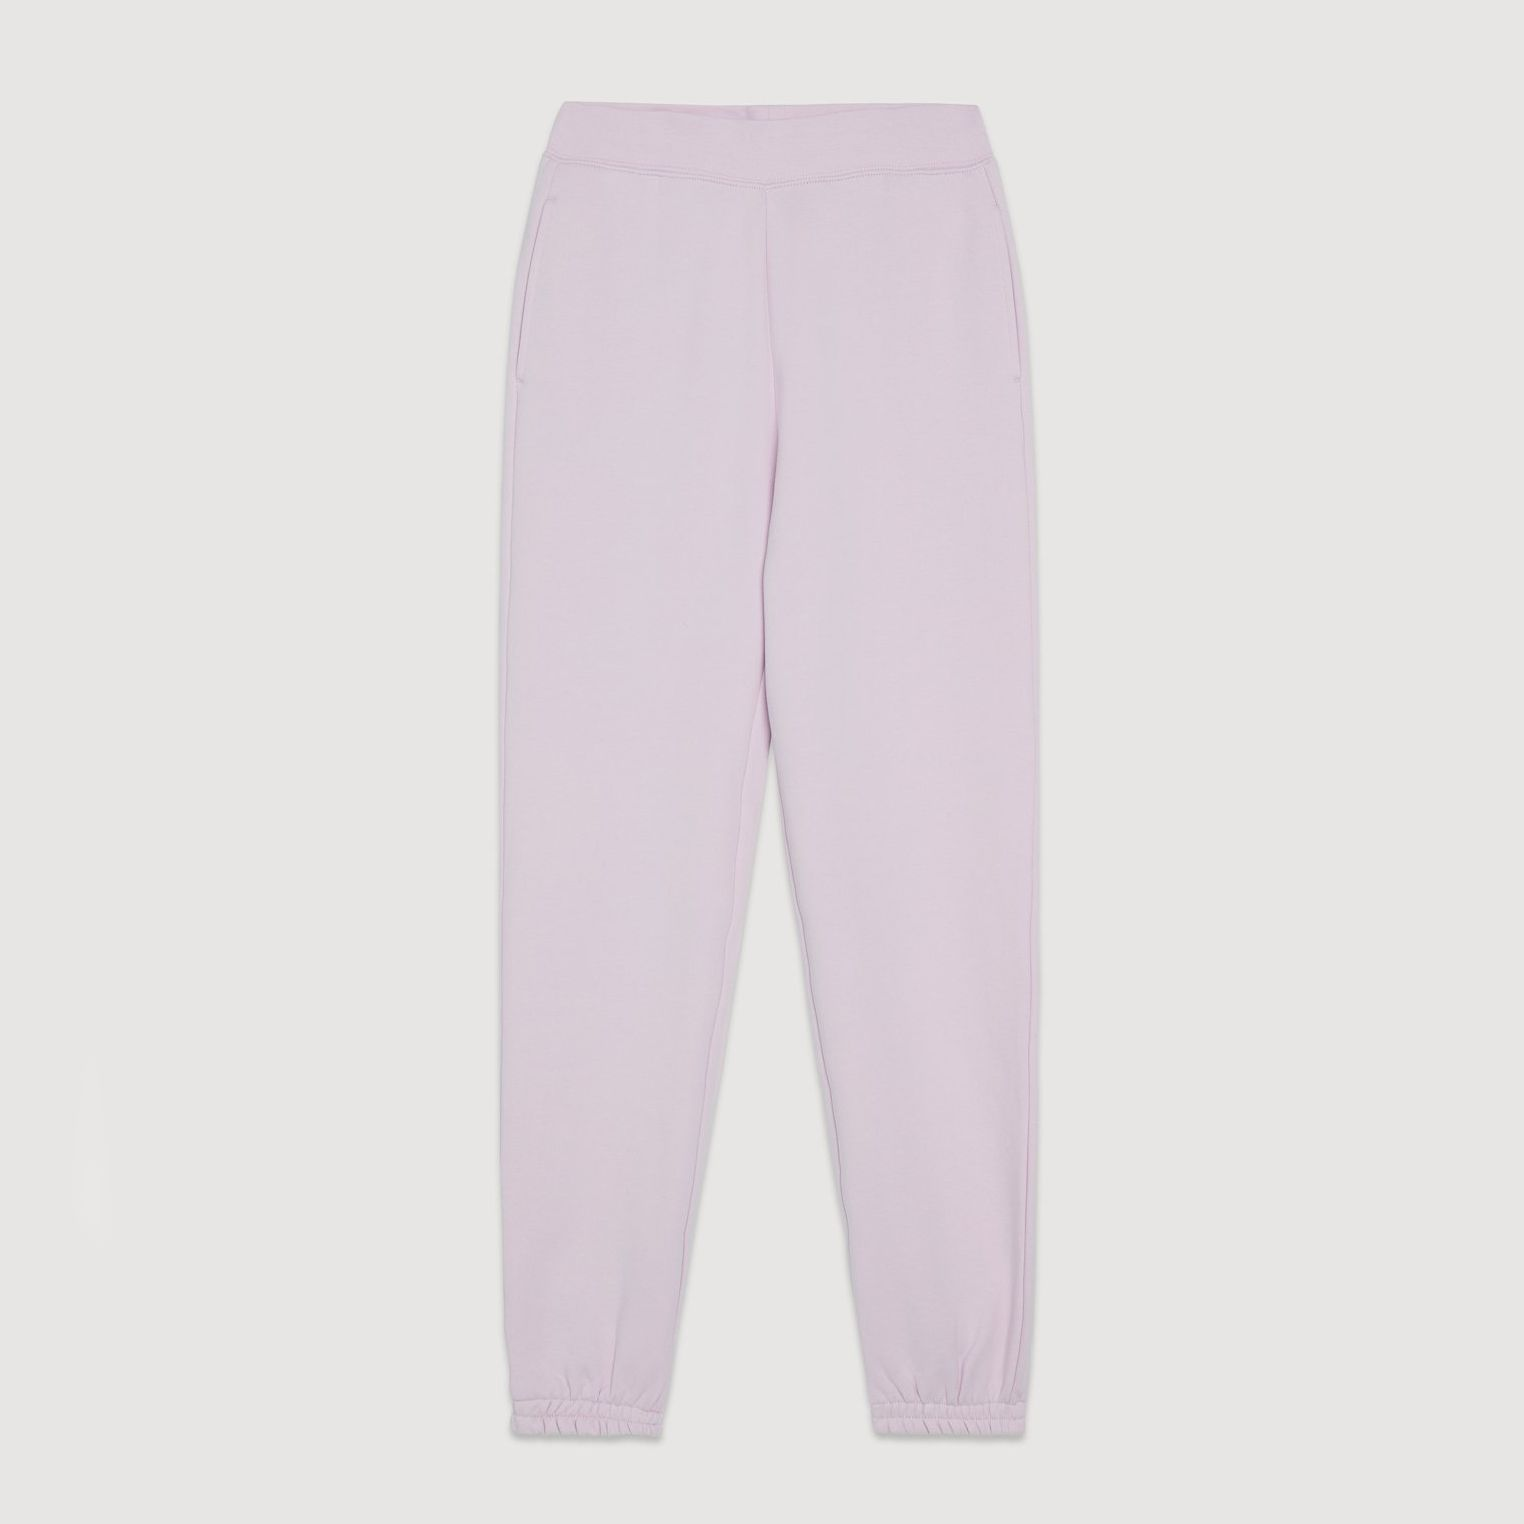 Girlfriend Collective Orchid Classic Jogger